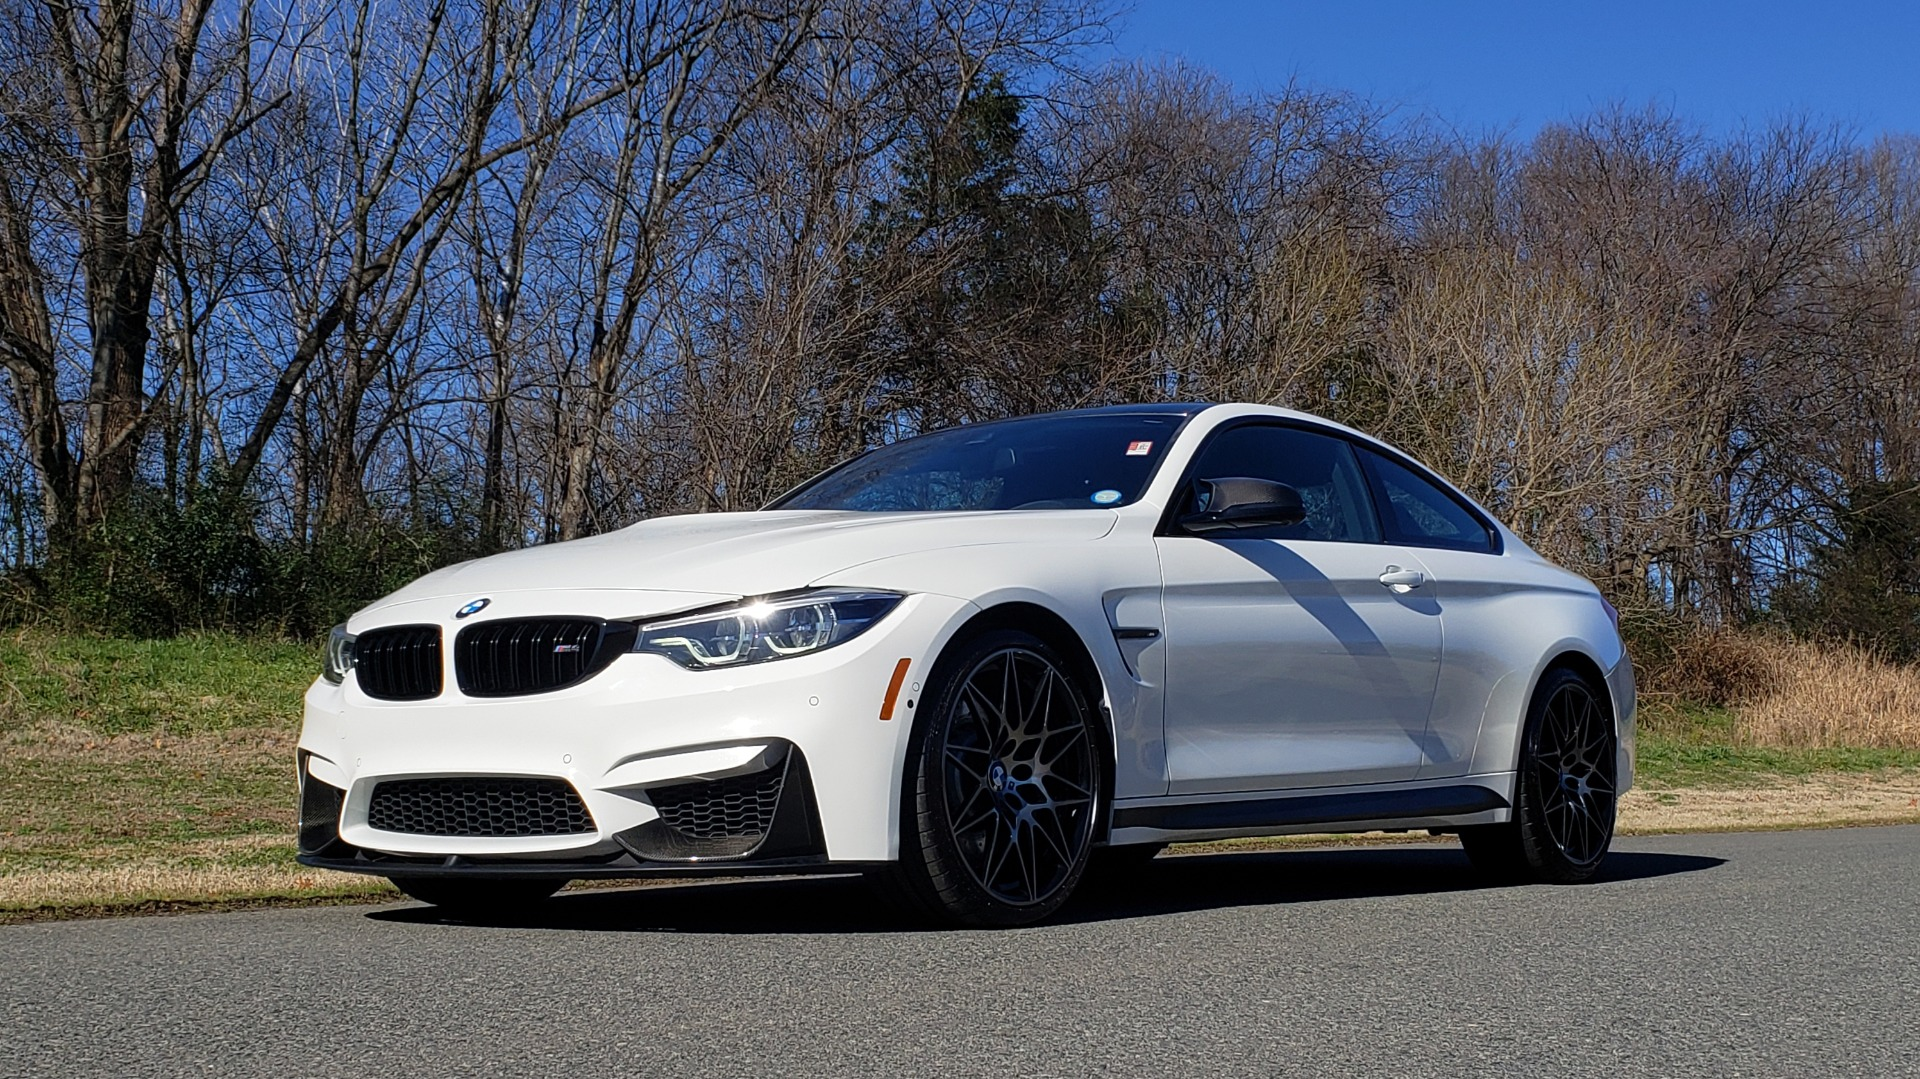 Used 2018 BMW M4 COMP PKG / EXEC / M-DRIVER / PARK CNTRL / ACTIVE BLIND SPOT for sale Sold at Formula Imports in Charlotte NC 28227 1